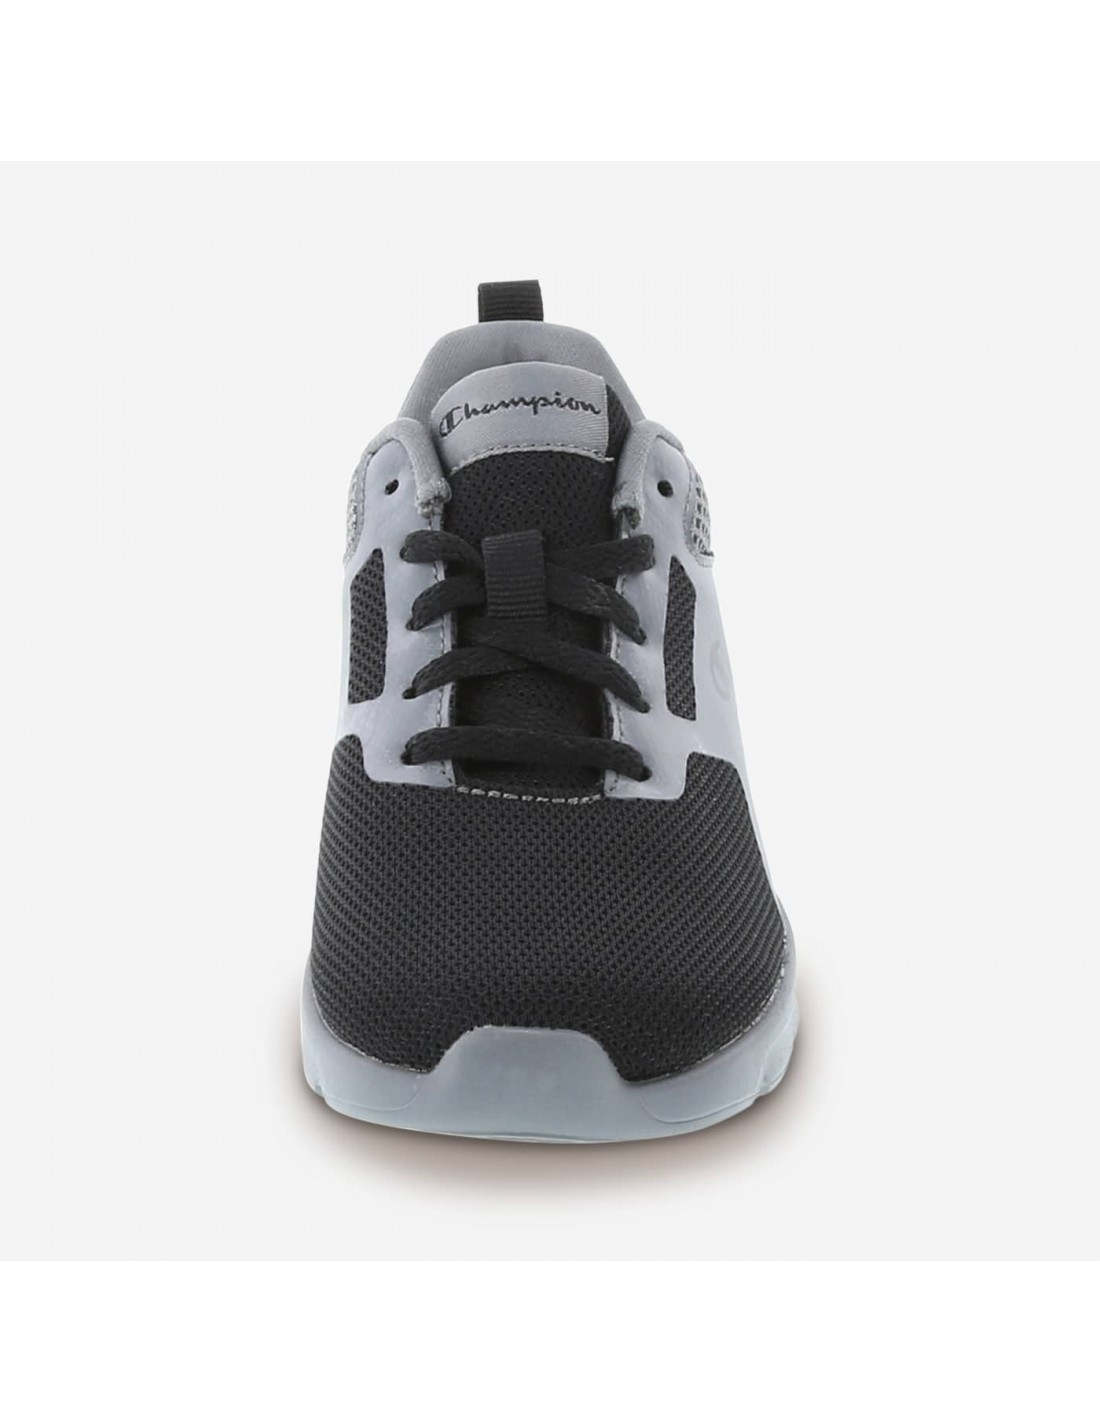 b0b7764ac606f Boy s Concur sneaker - Grey. On sale!